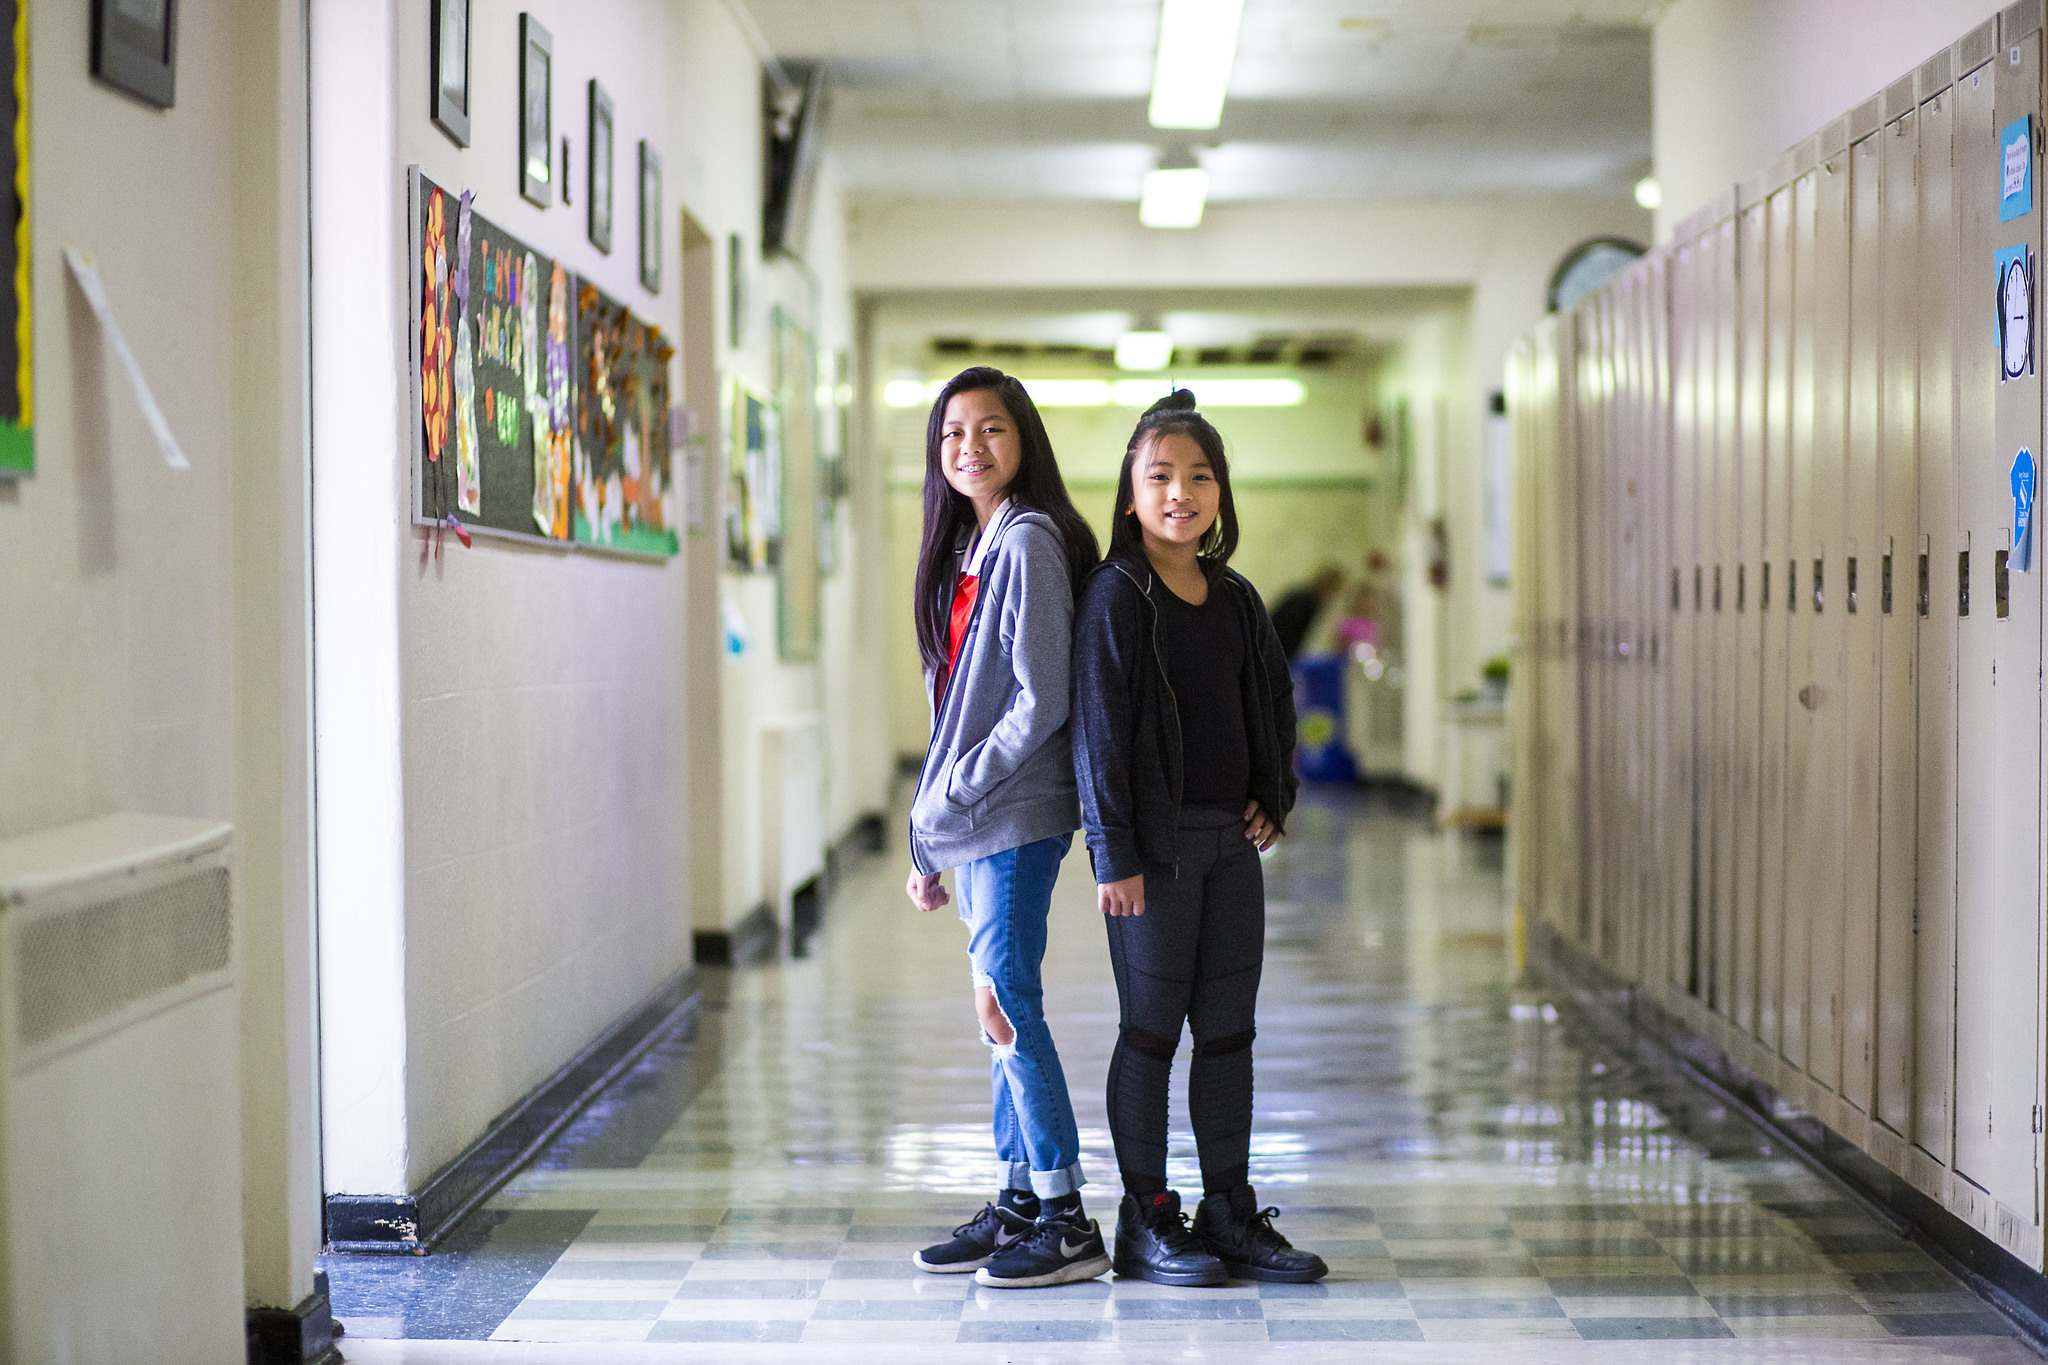 Sargent Park School students Jarylle Santos, 13 (left), and Mikayla Seculles, 10. Mindfulness 'can really help you calm down and learn better,' Mikayla says.</p>